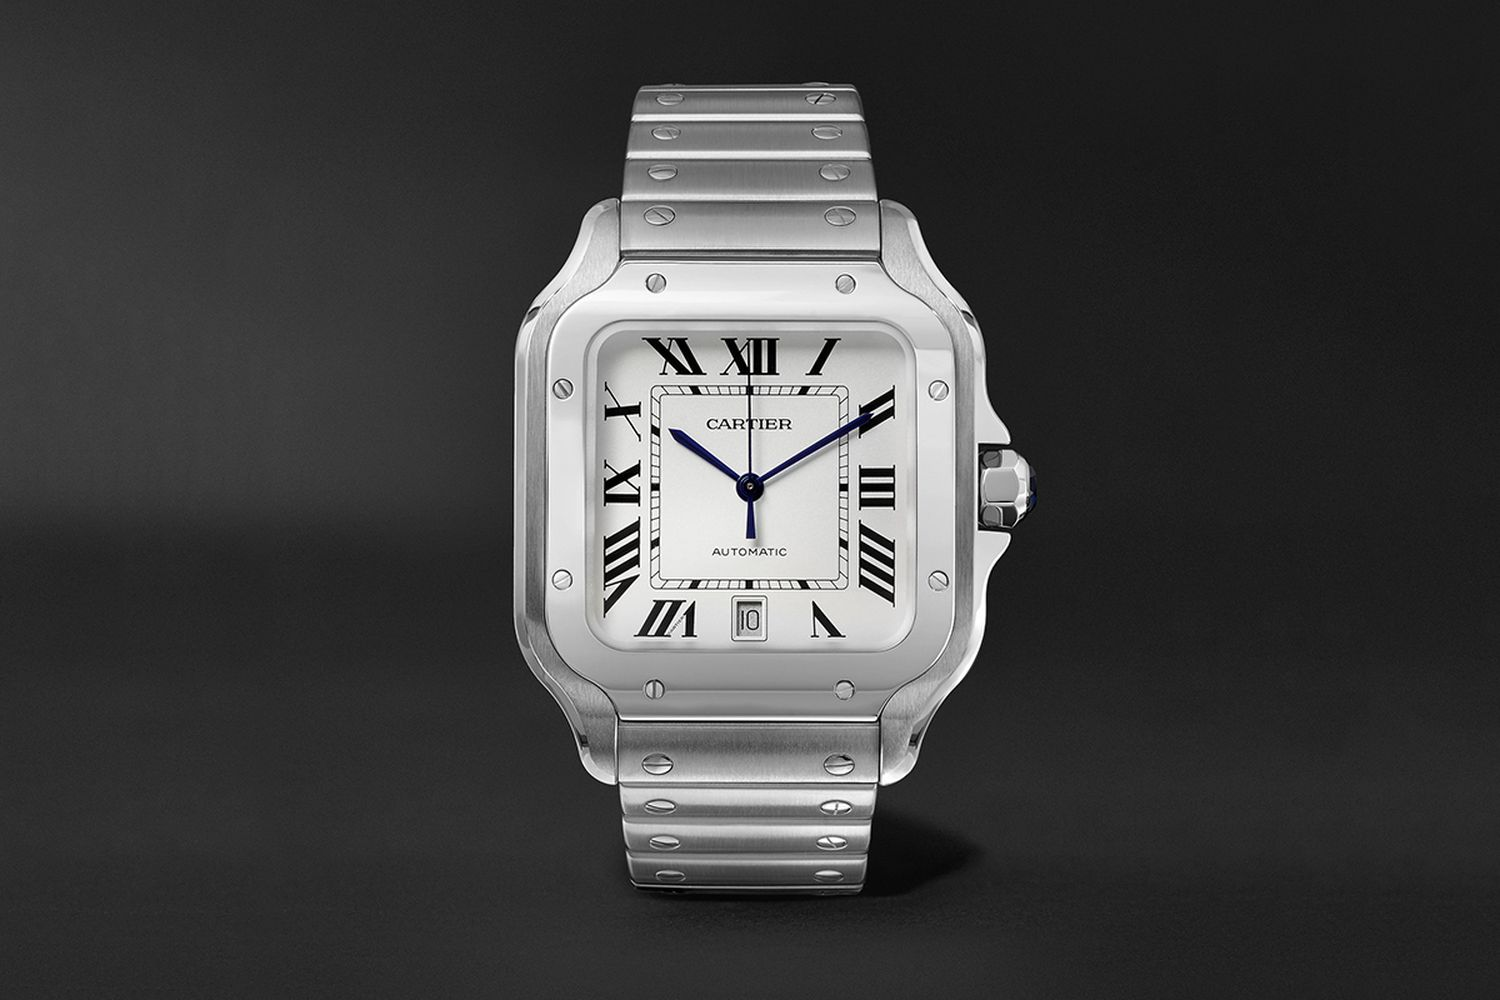 Santos 39.8mm Interchangeable Stainless Steel Watch